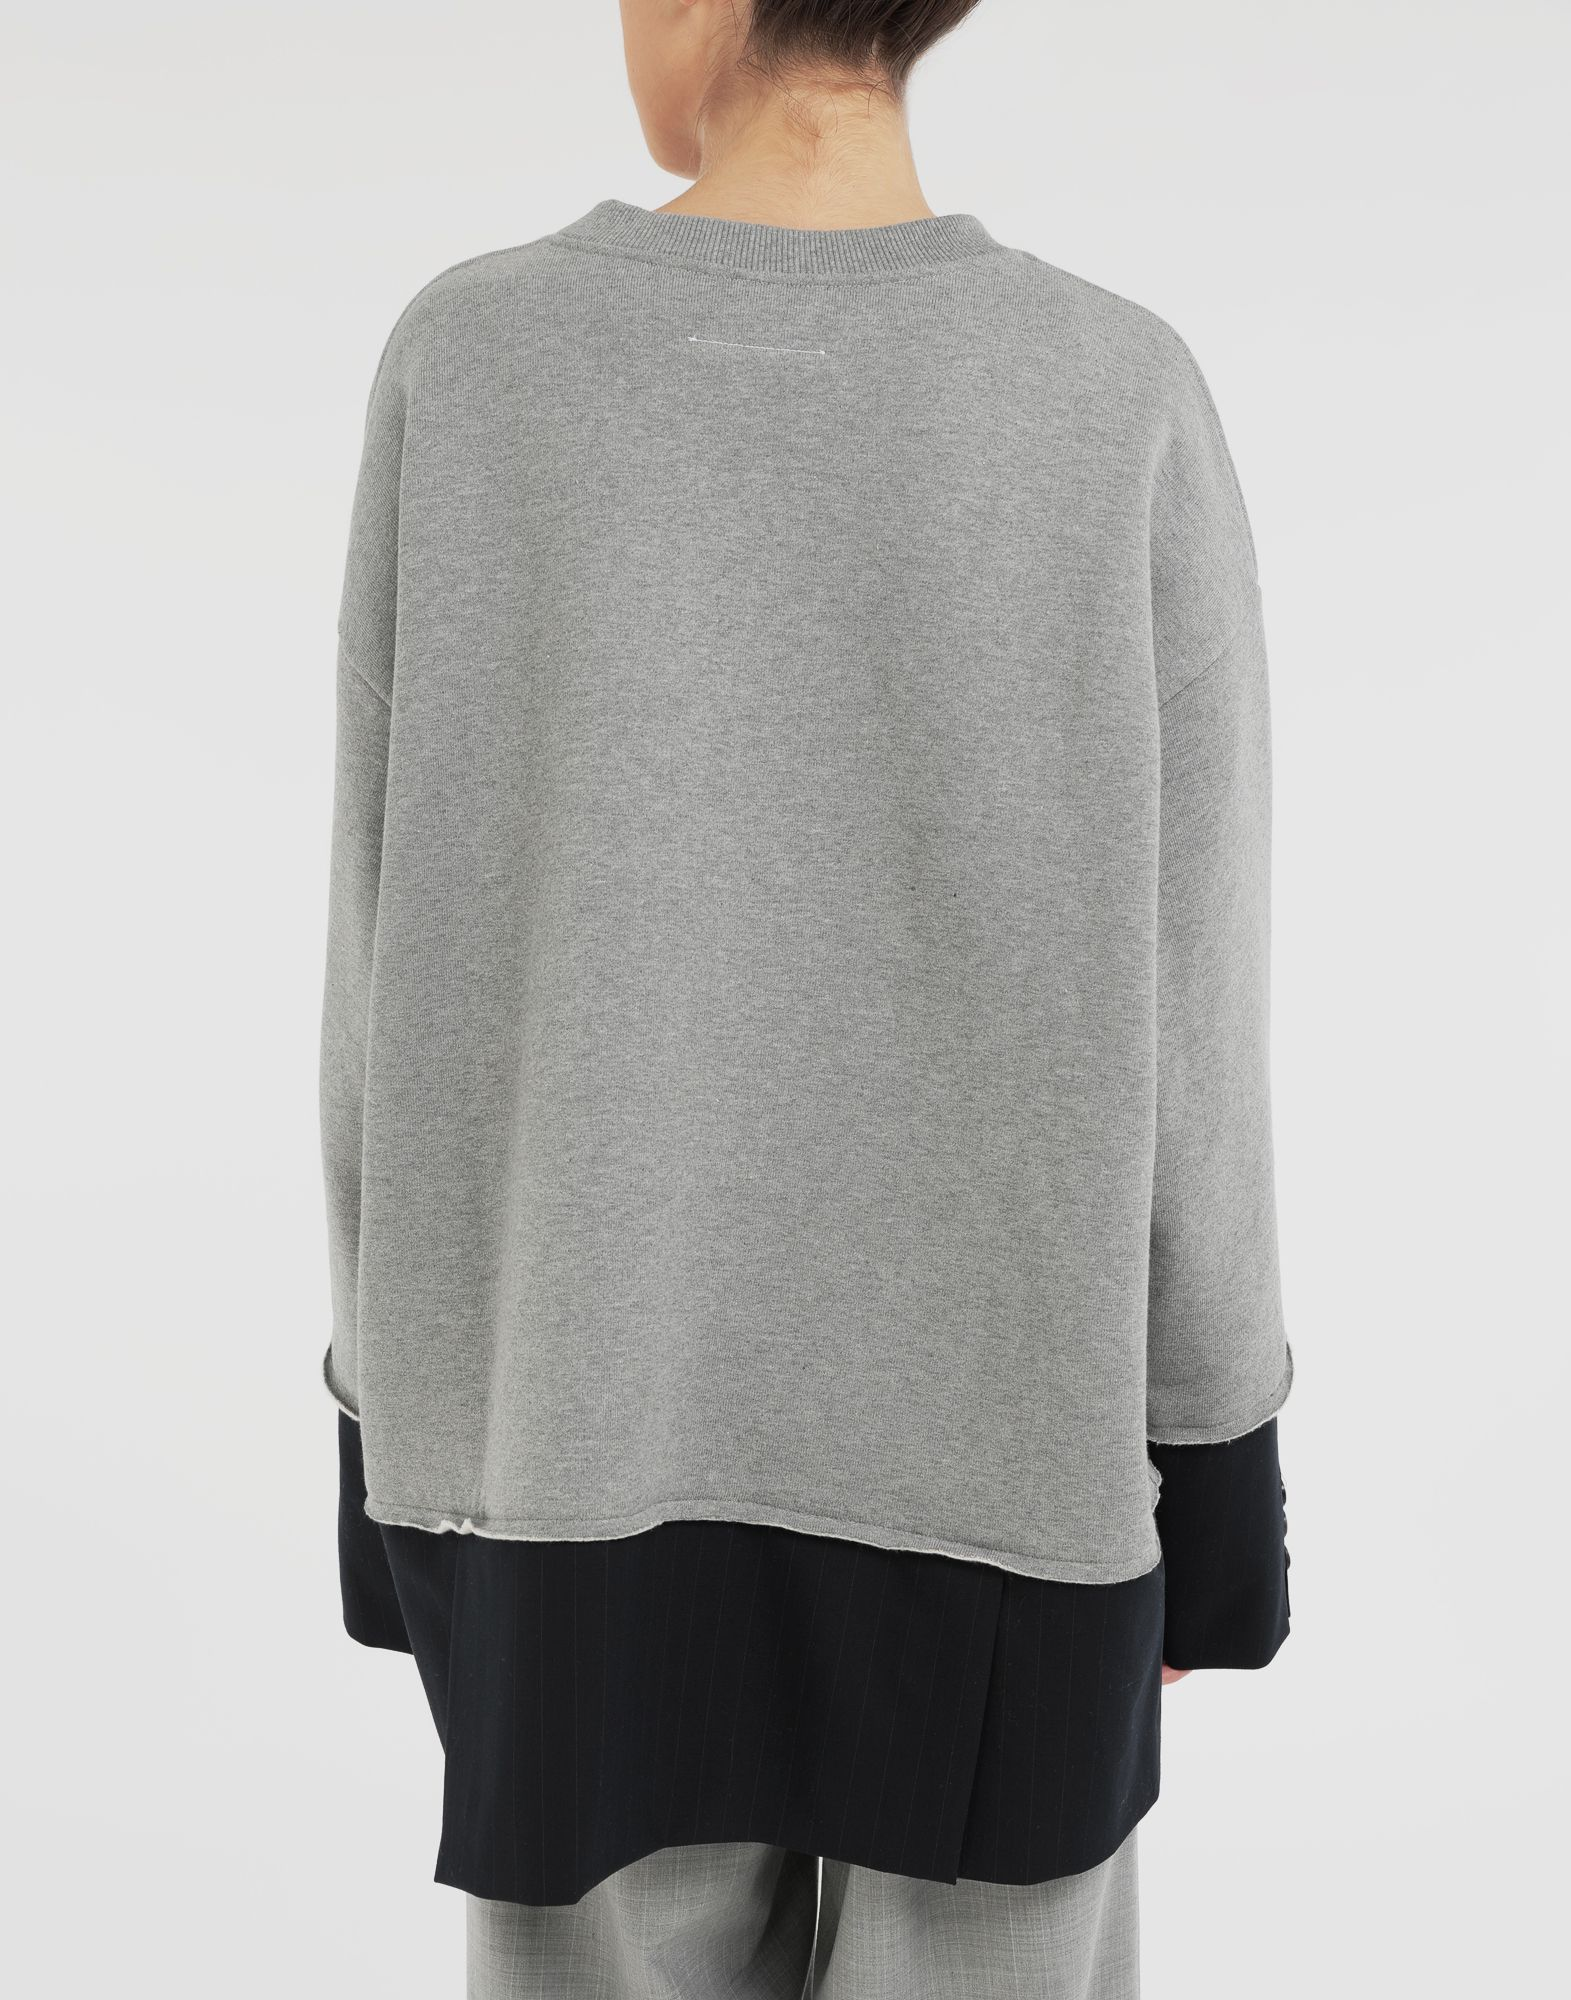 MM6 MAISON MARGIELA Spliced sweatshirt Sweatshirt Woman e